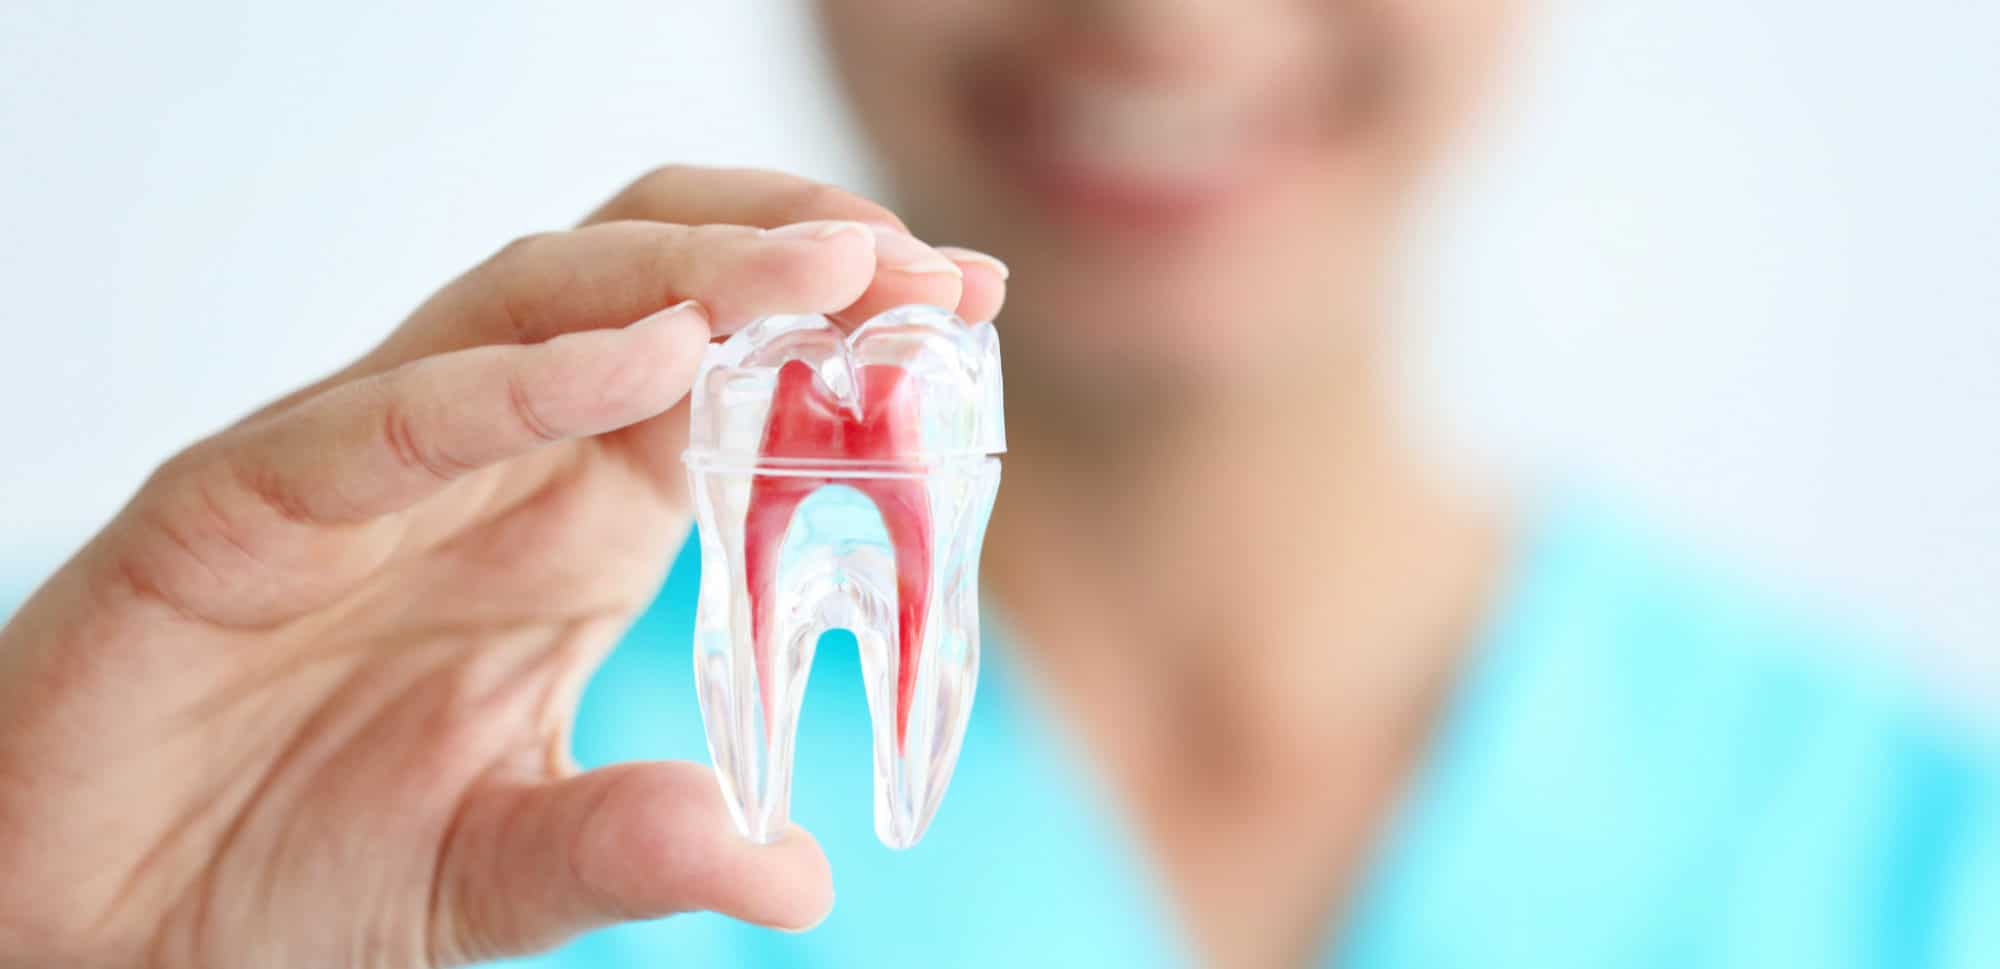 root canal therapy, Ask the Expert: No Need to Fear Root Canal Therapy